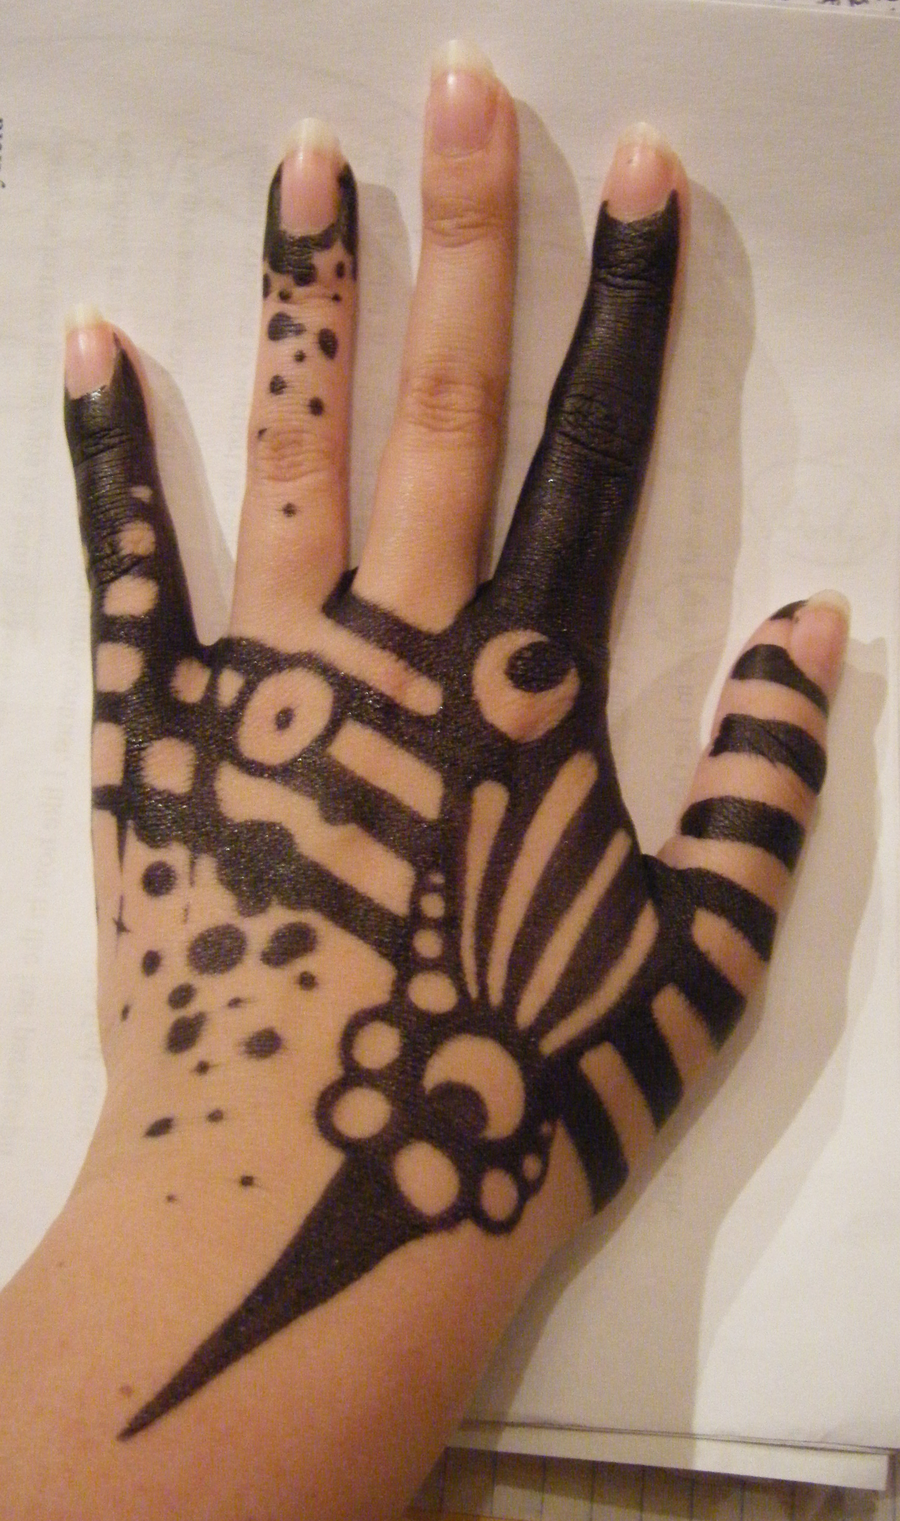 Sharpie Tattoo Love It Not Real But Really Creative